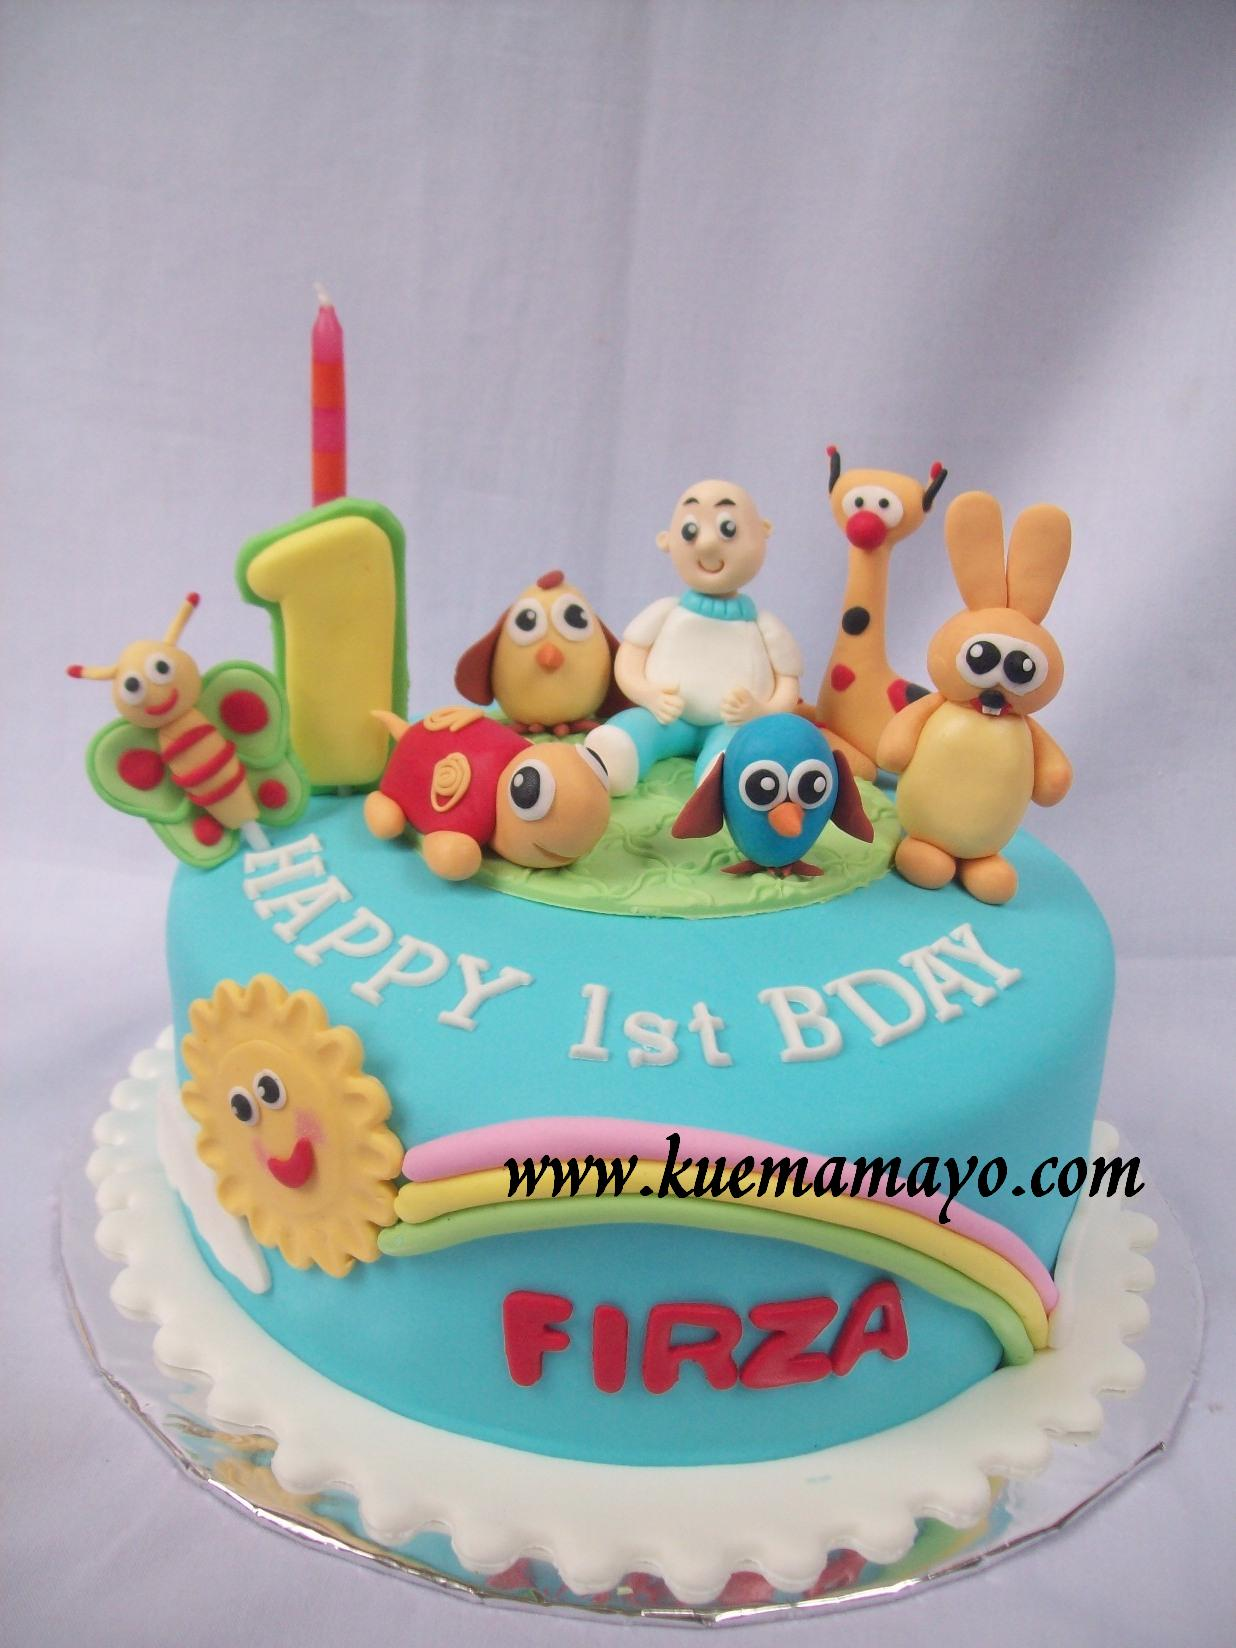 1000+ images about Baby tv cake on Pinterest